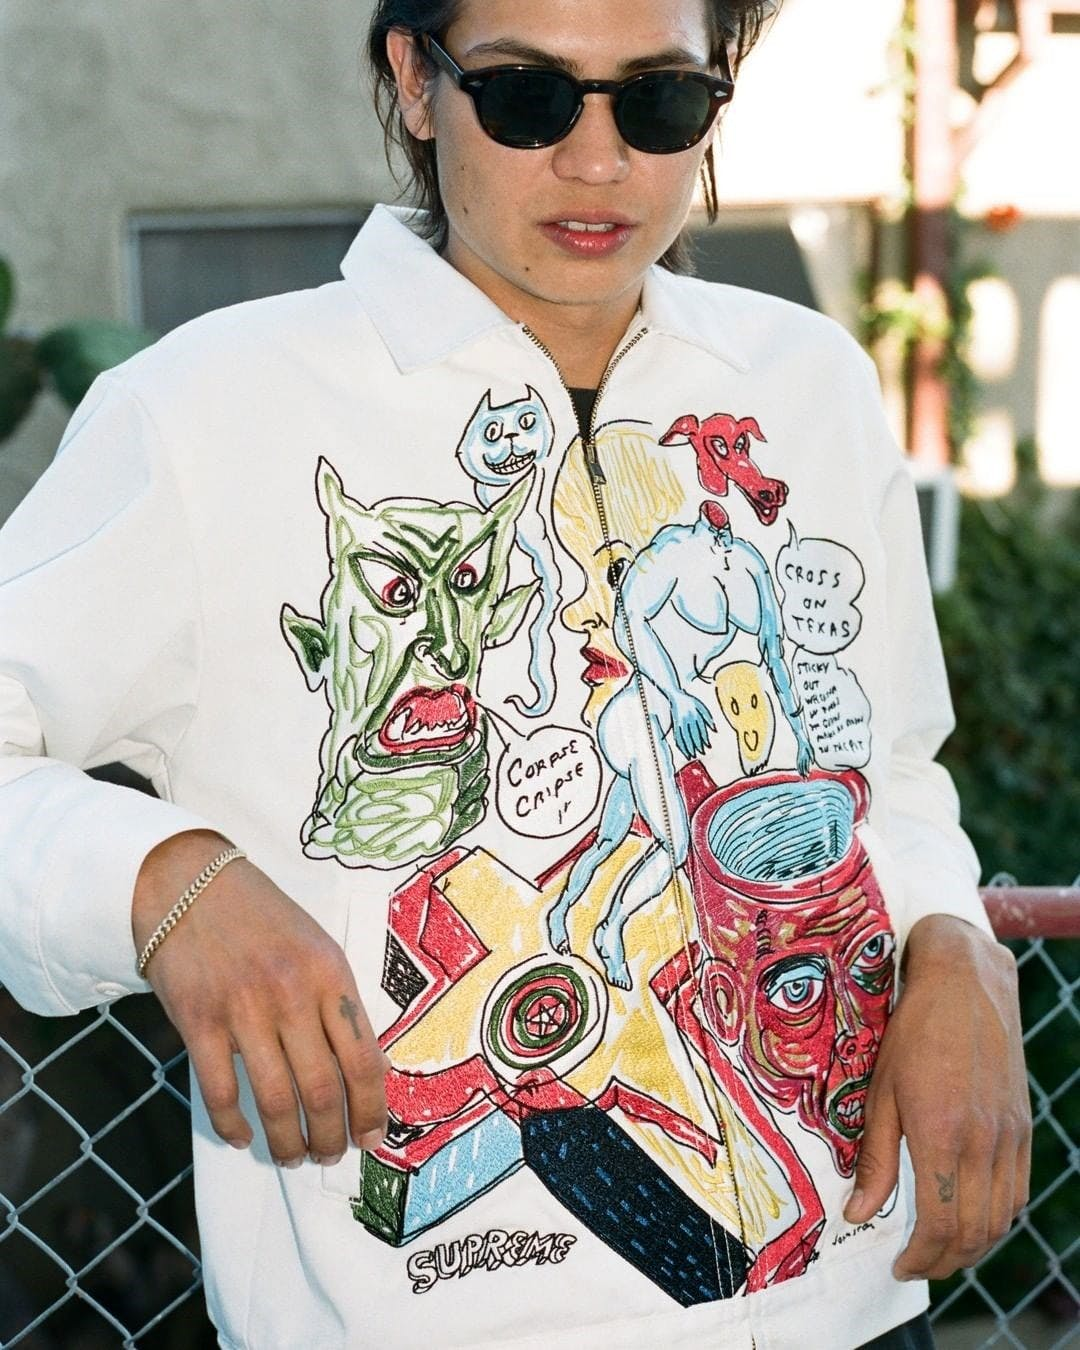 SUPREME X DANIEL JOHNSTON COLLABORATION DROPS THIS WEEK